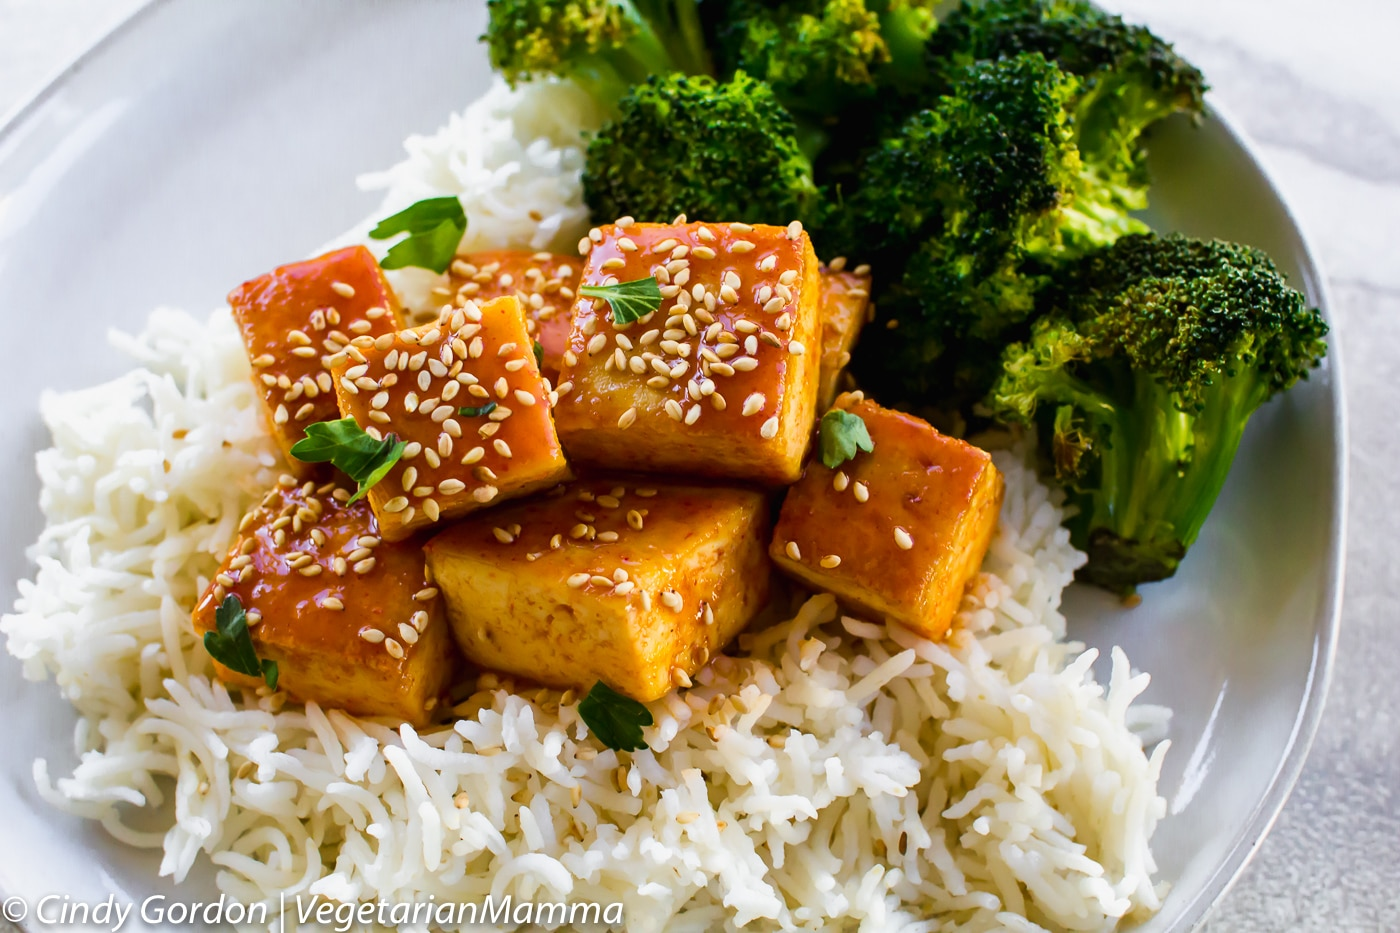 Honey Sriracha Tofu is a spicy fried tofu recipe